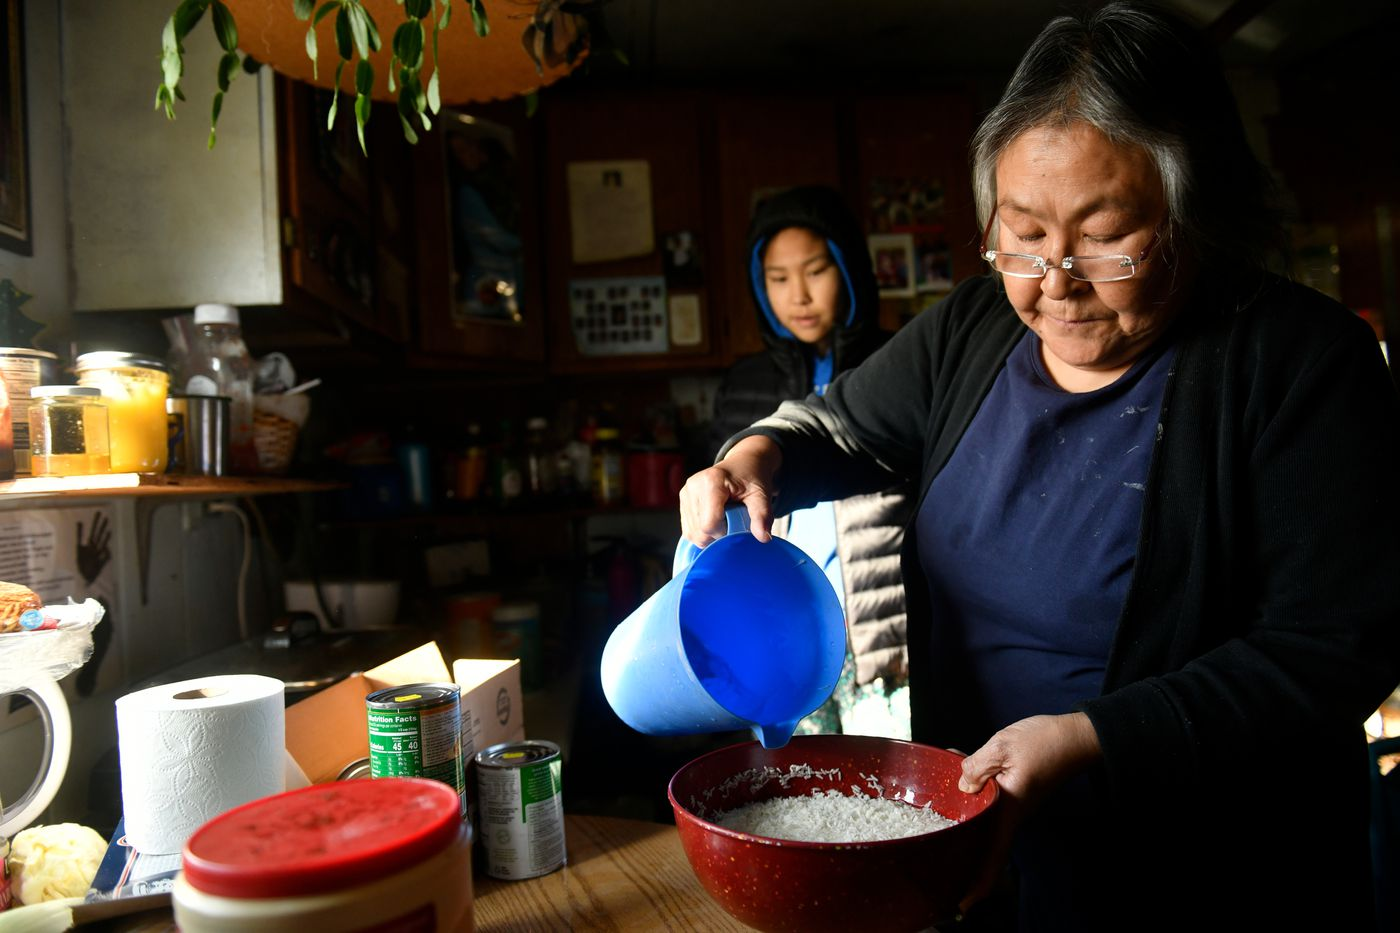 Bernice John, right, prepares a meal in her Newtok home. John said she's looking forward to having more space once she moves to Mertarvik. (Marc Lester / ADN)